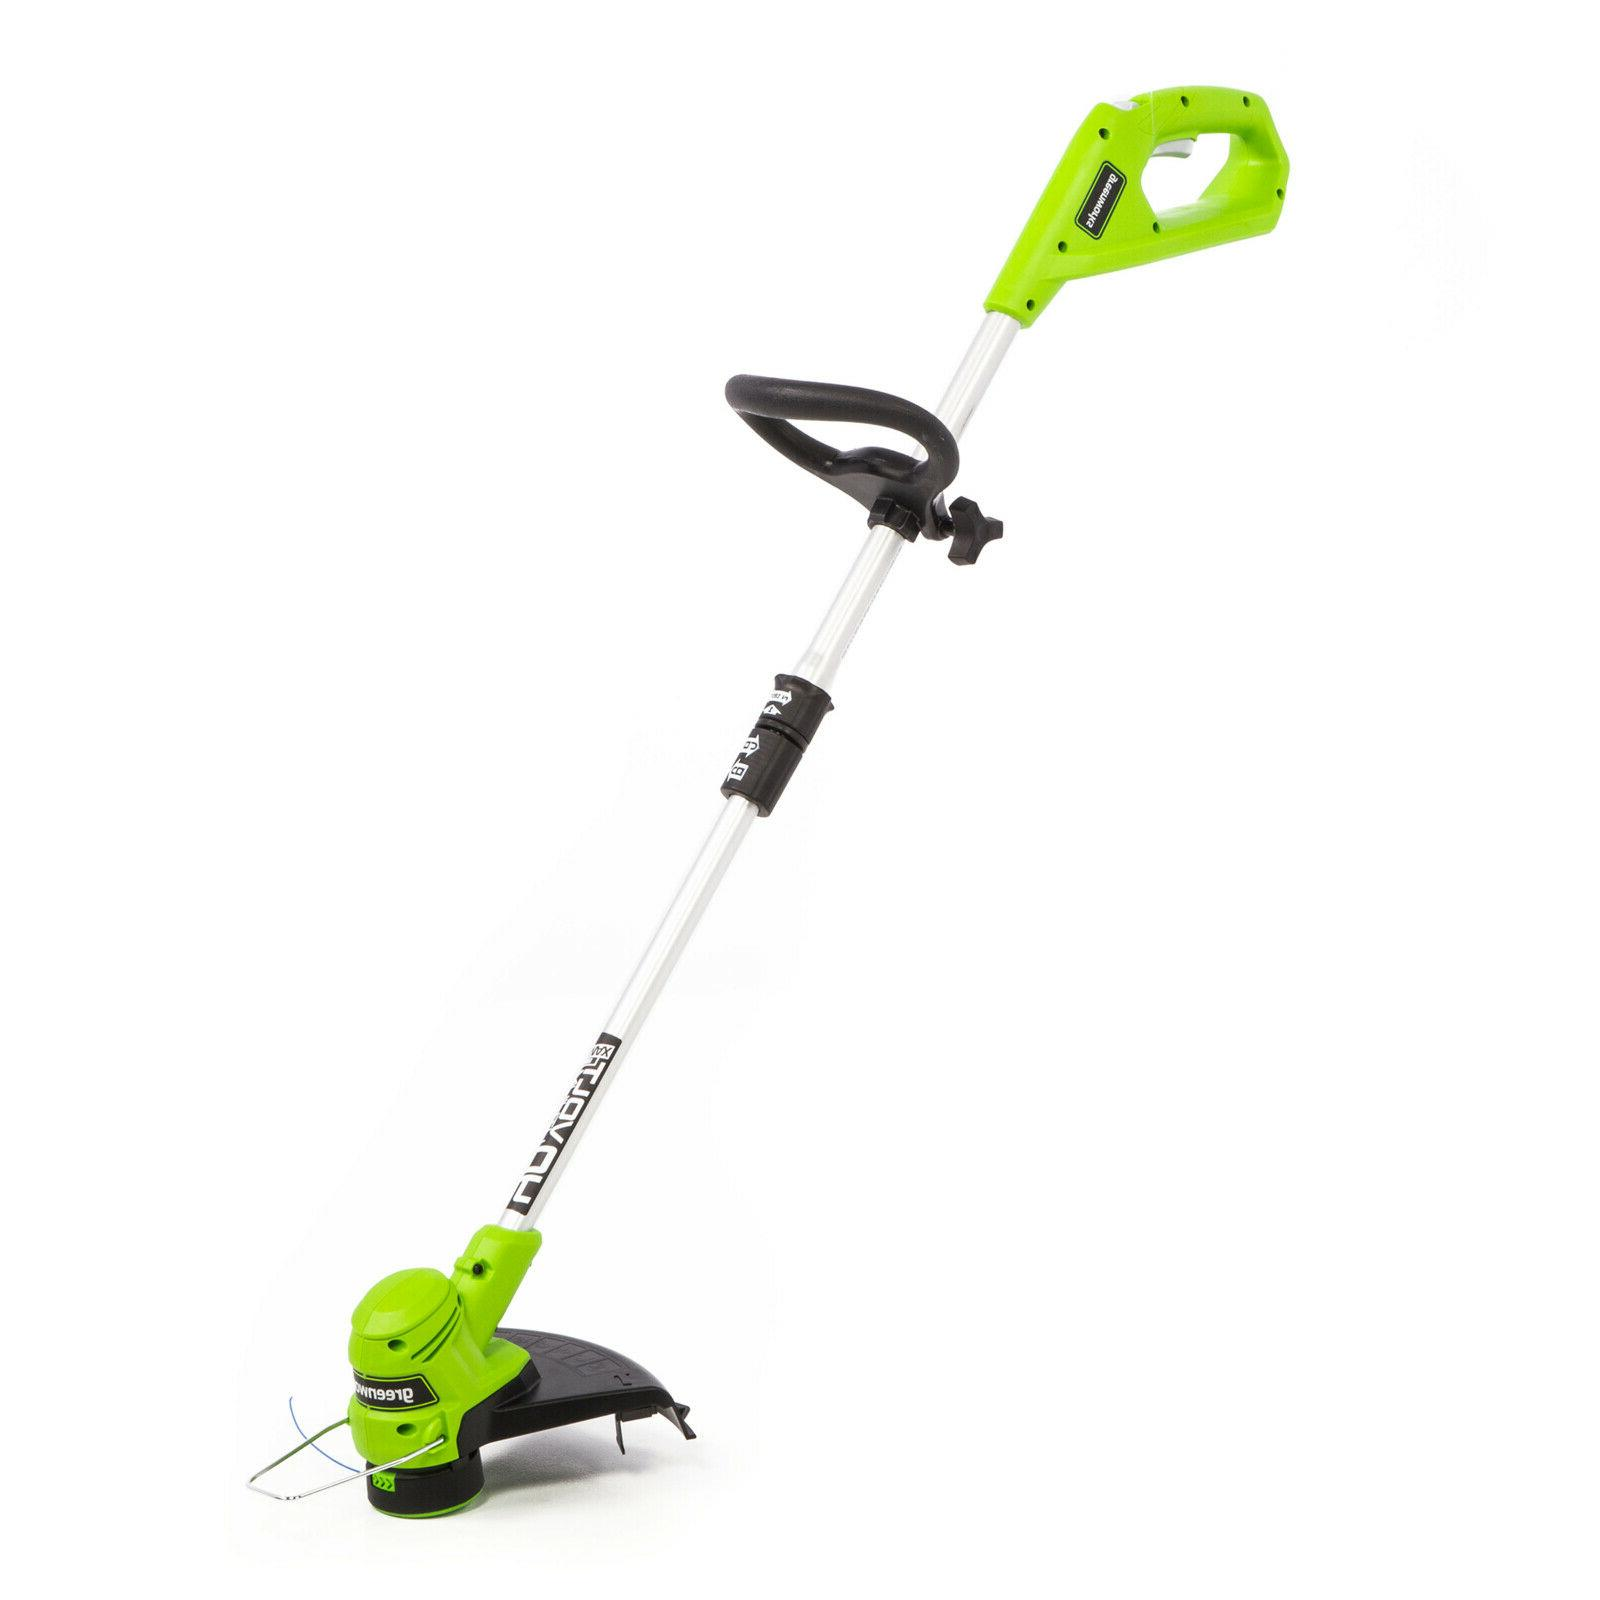 Greenworks 40V 12-Inch Trimmer 2.0 Ah and Charger